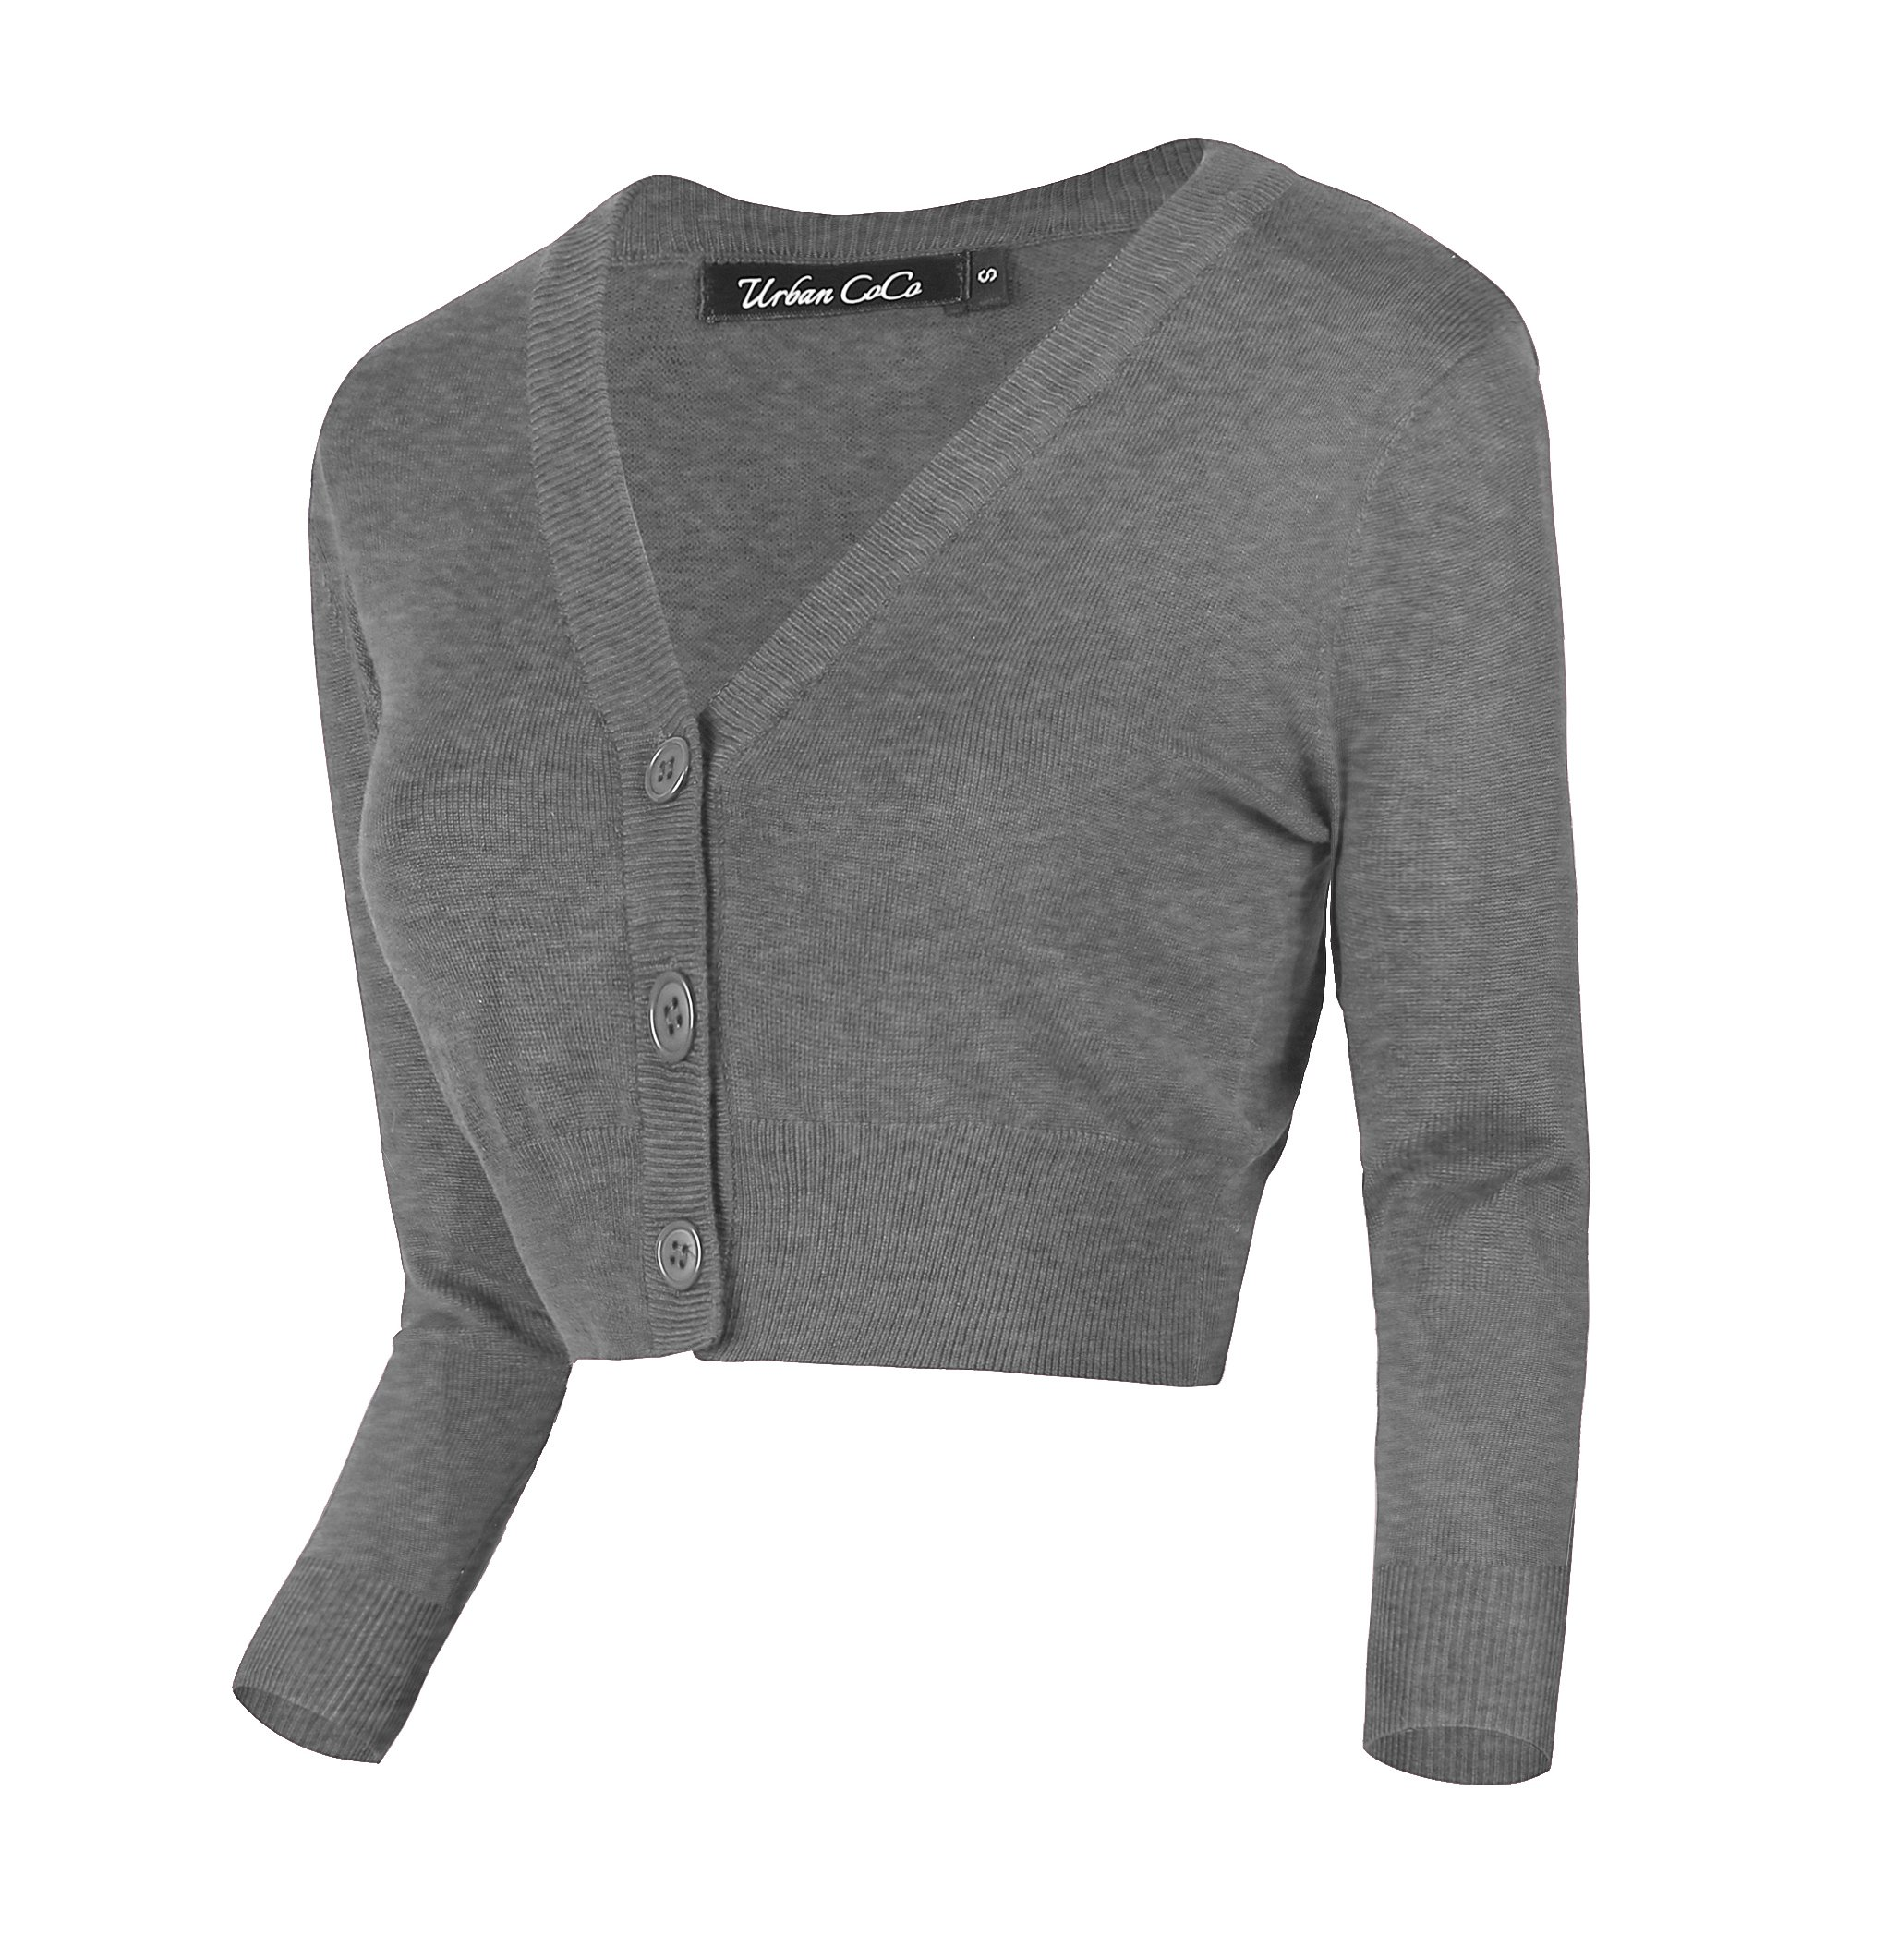 Urban CoCo Women's Cropped Cardigan V-Neck Button Down Knitted Sweater 3/4 Sleeve (L, Heather Gray)